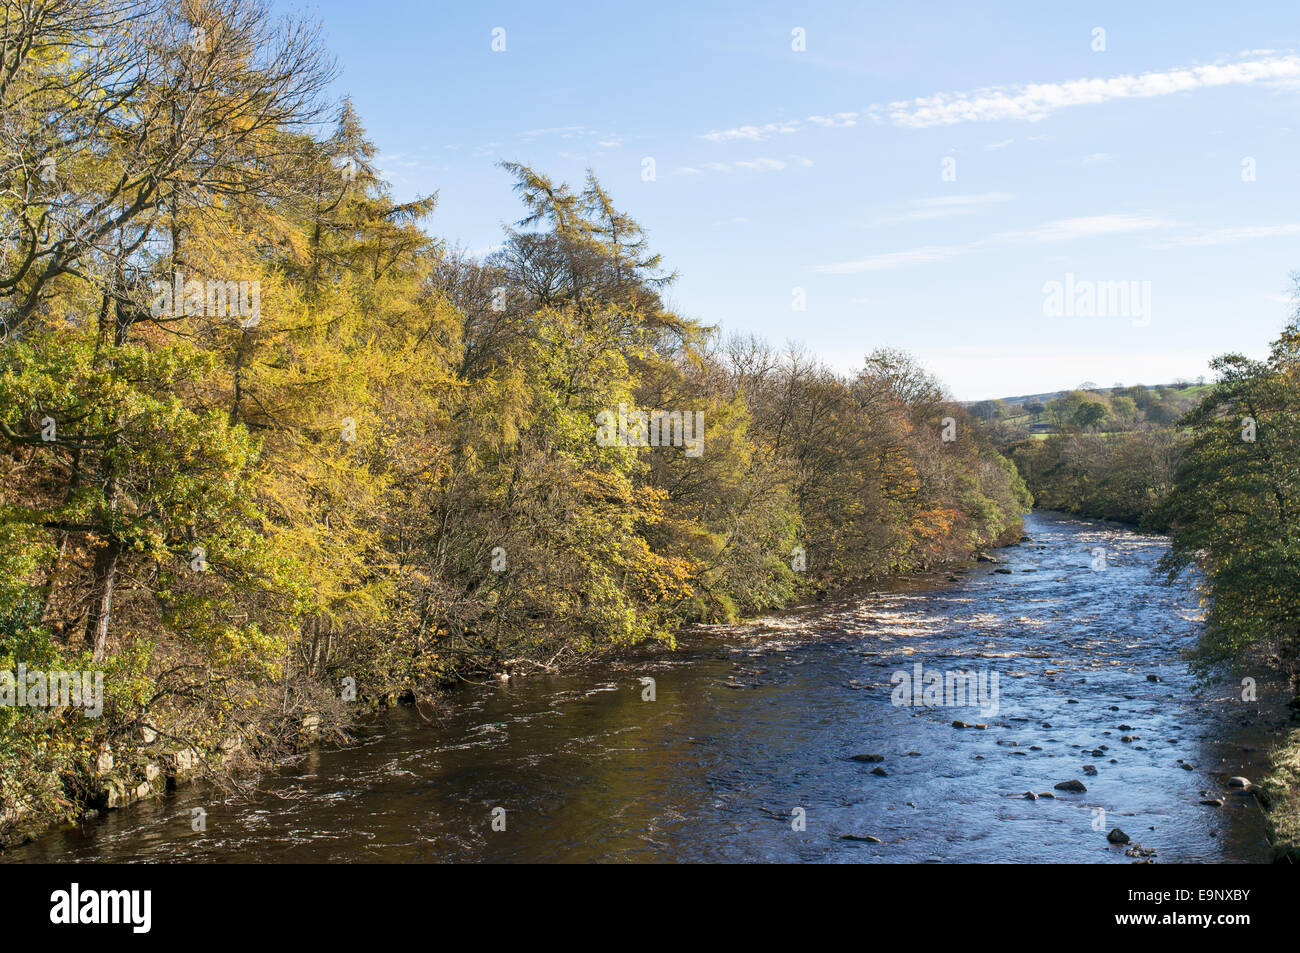 The river Tees at Middleton in Teesdale in autumn, north east England, UK - Stock Image